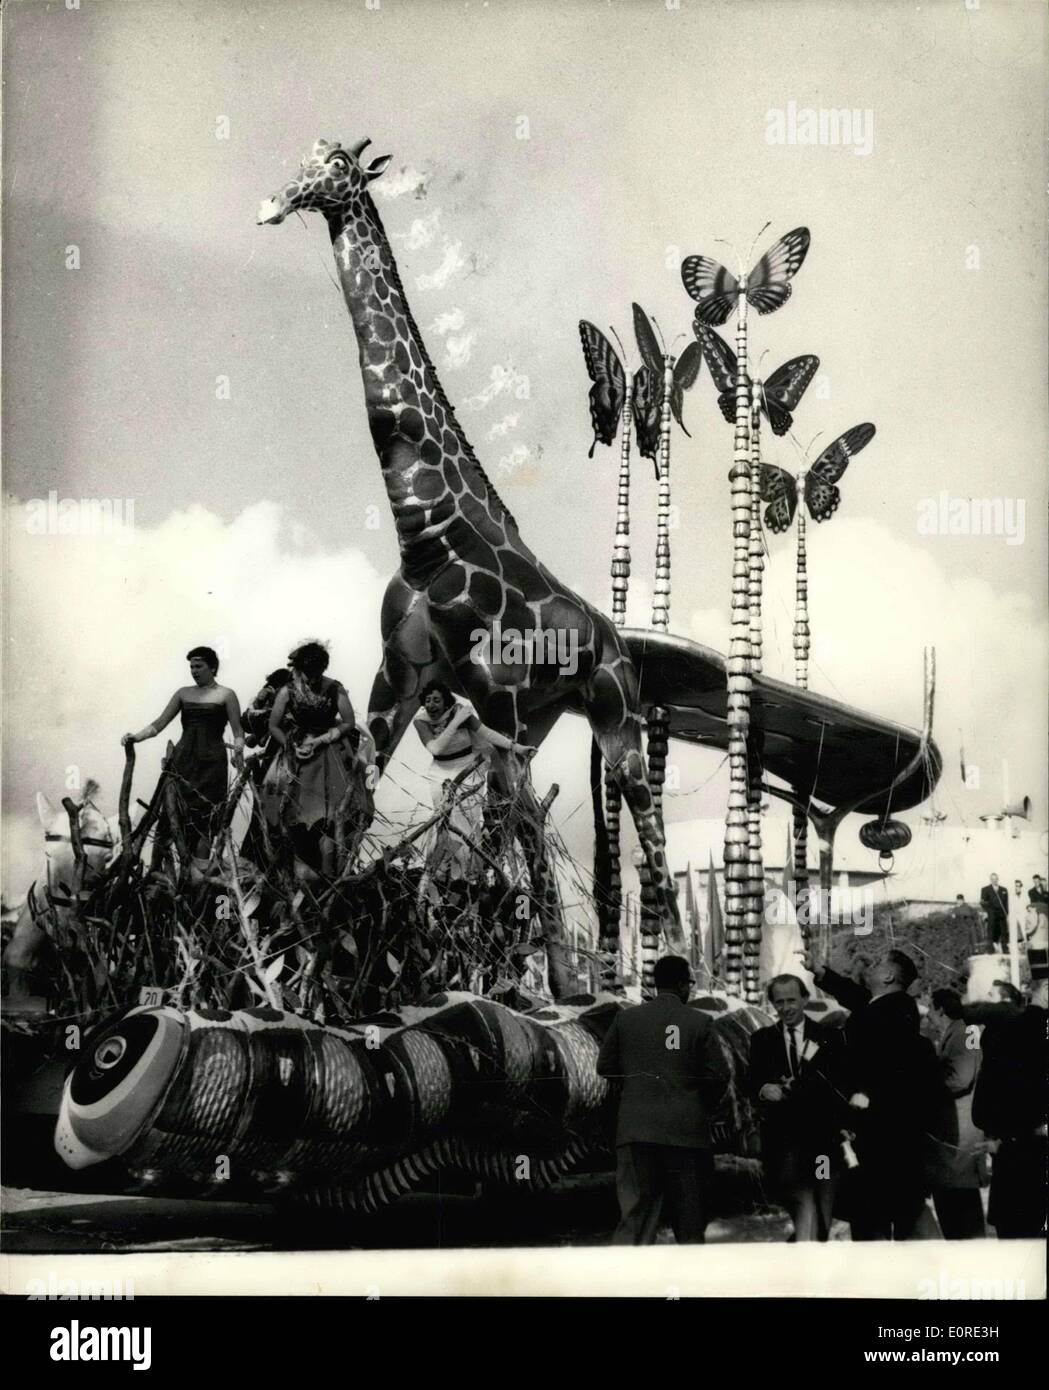 Feb. 09, 1959 - The lesson carnival. The 'Giraffe' Tableau: photo shows One of the colorful tableaux in the shape of a giraffe- - Stock Image